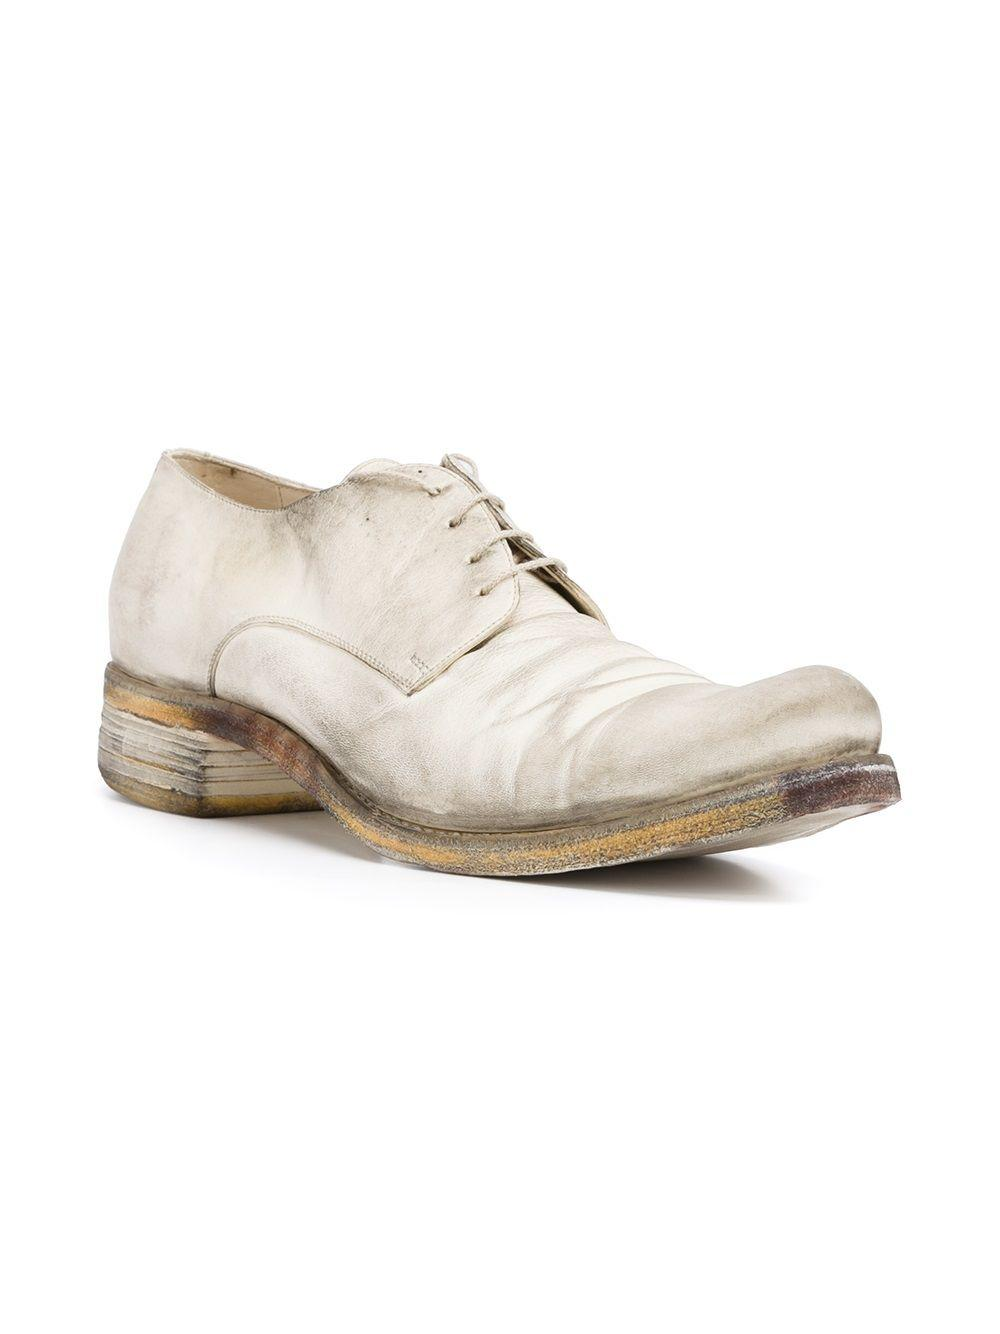 A Diciannoveventitre Leather Distressed Lace-up Shoes in White for Men